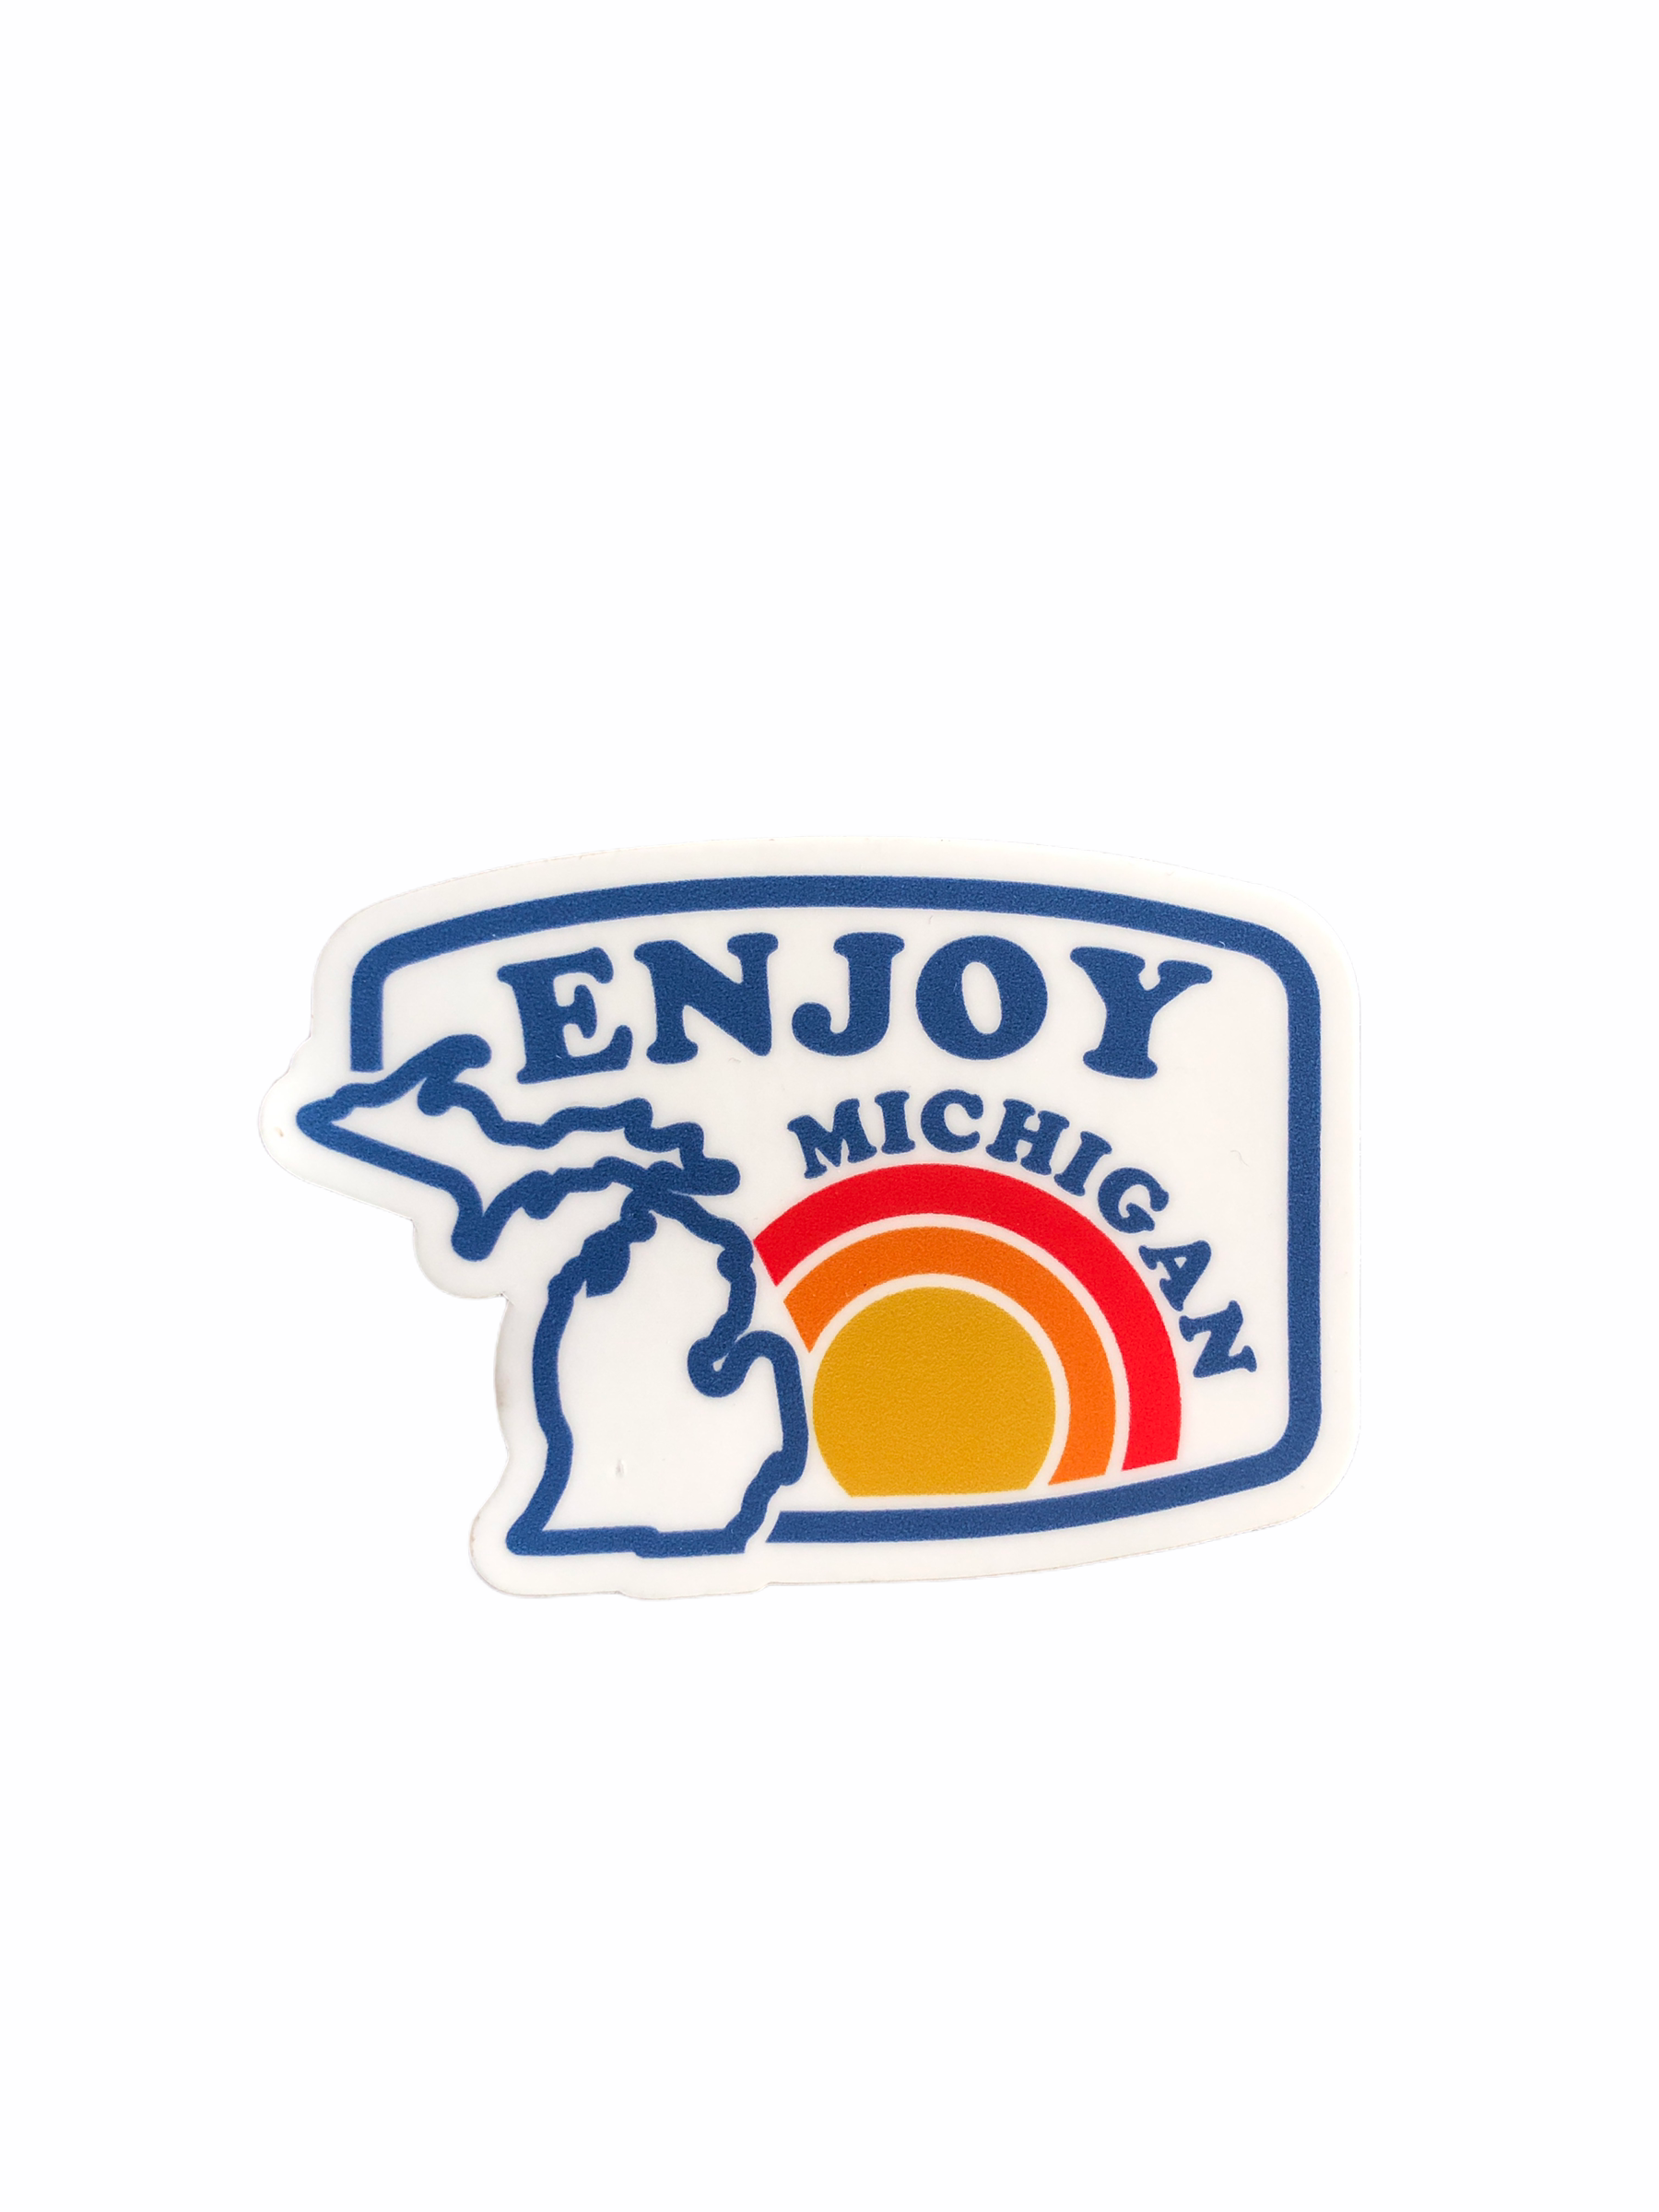 Enjoy Michigan Retro Soft Magnet - Pure Detroit